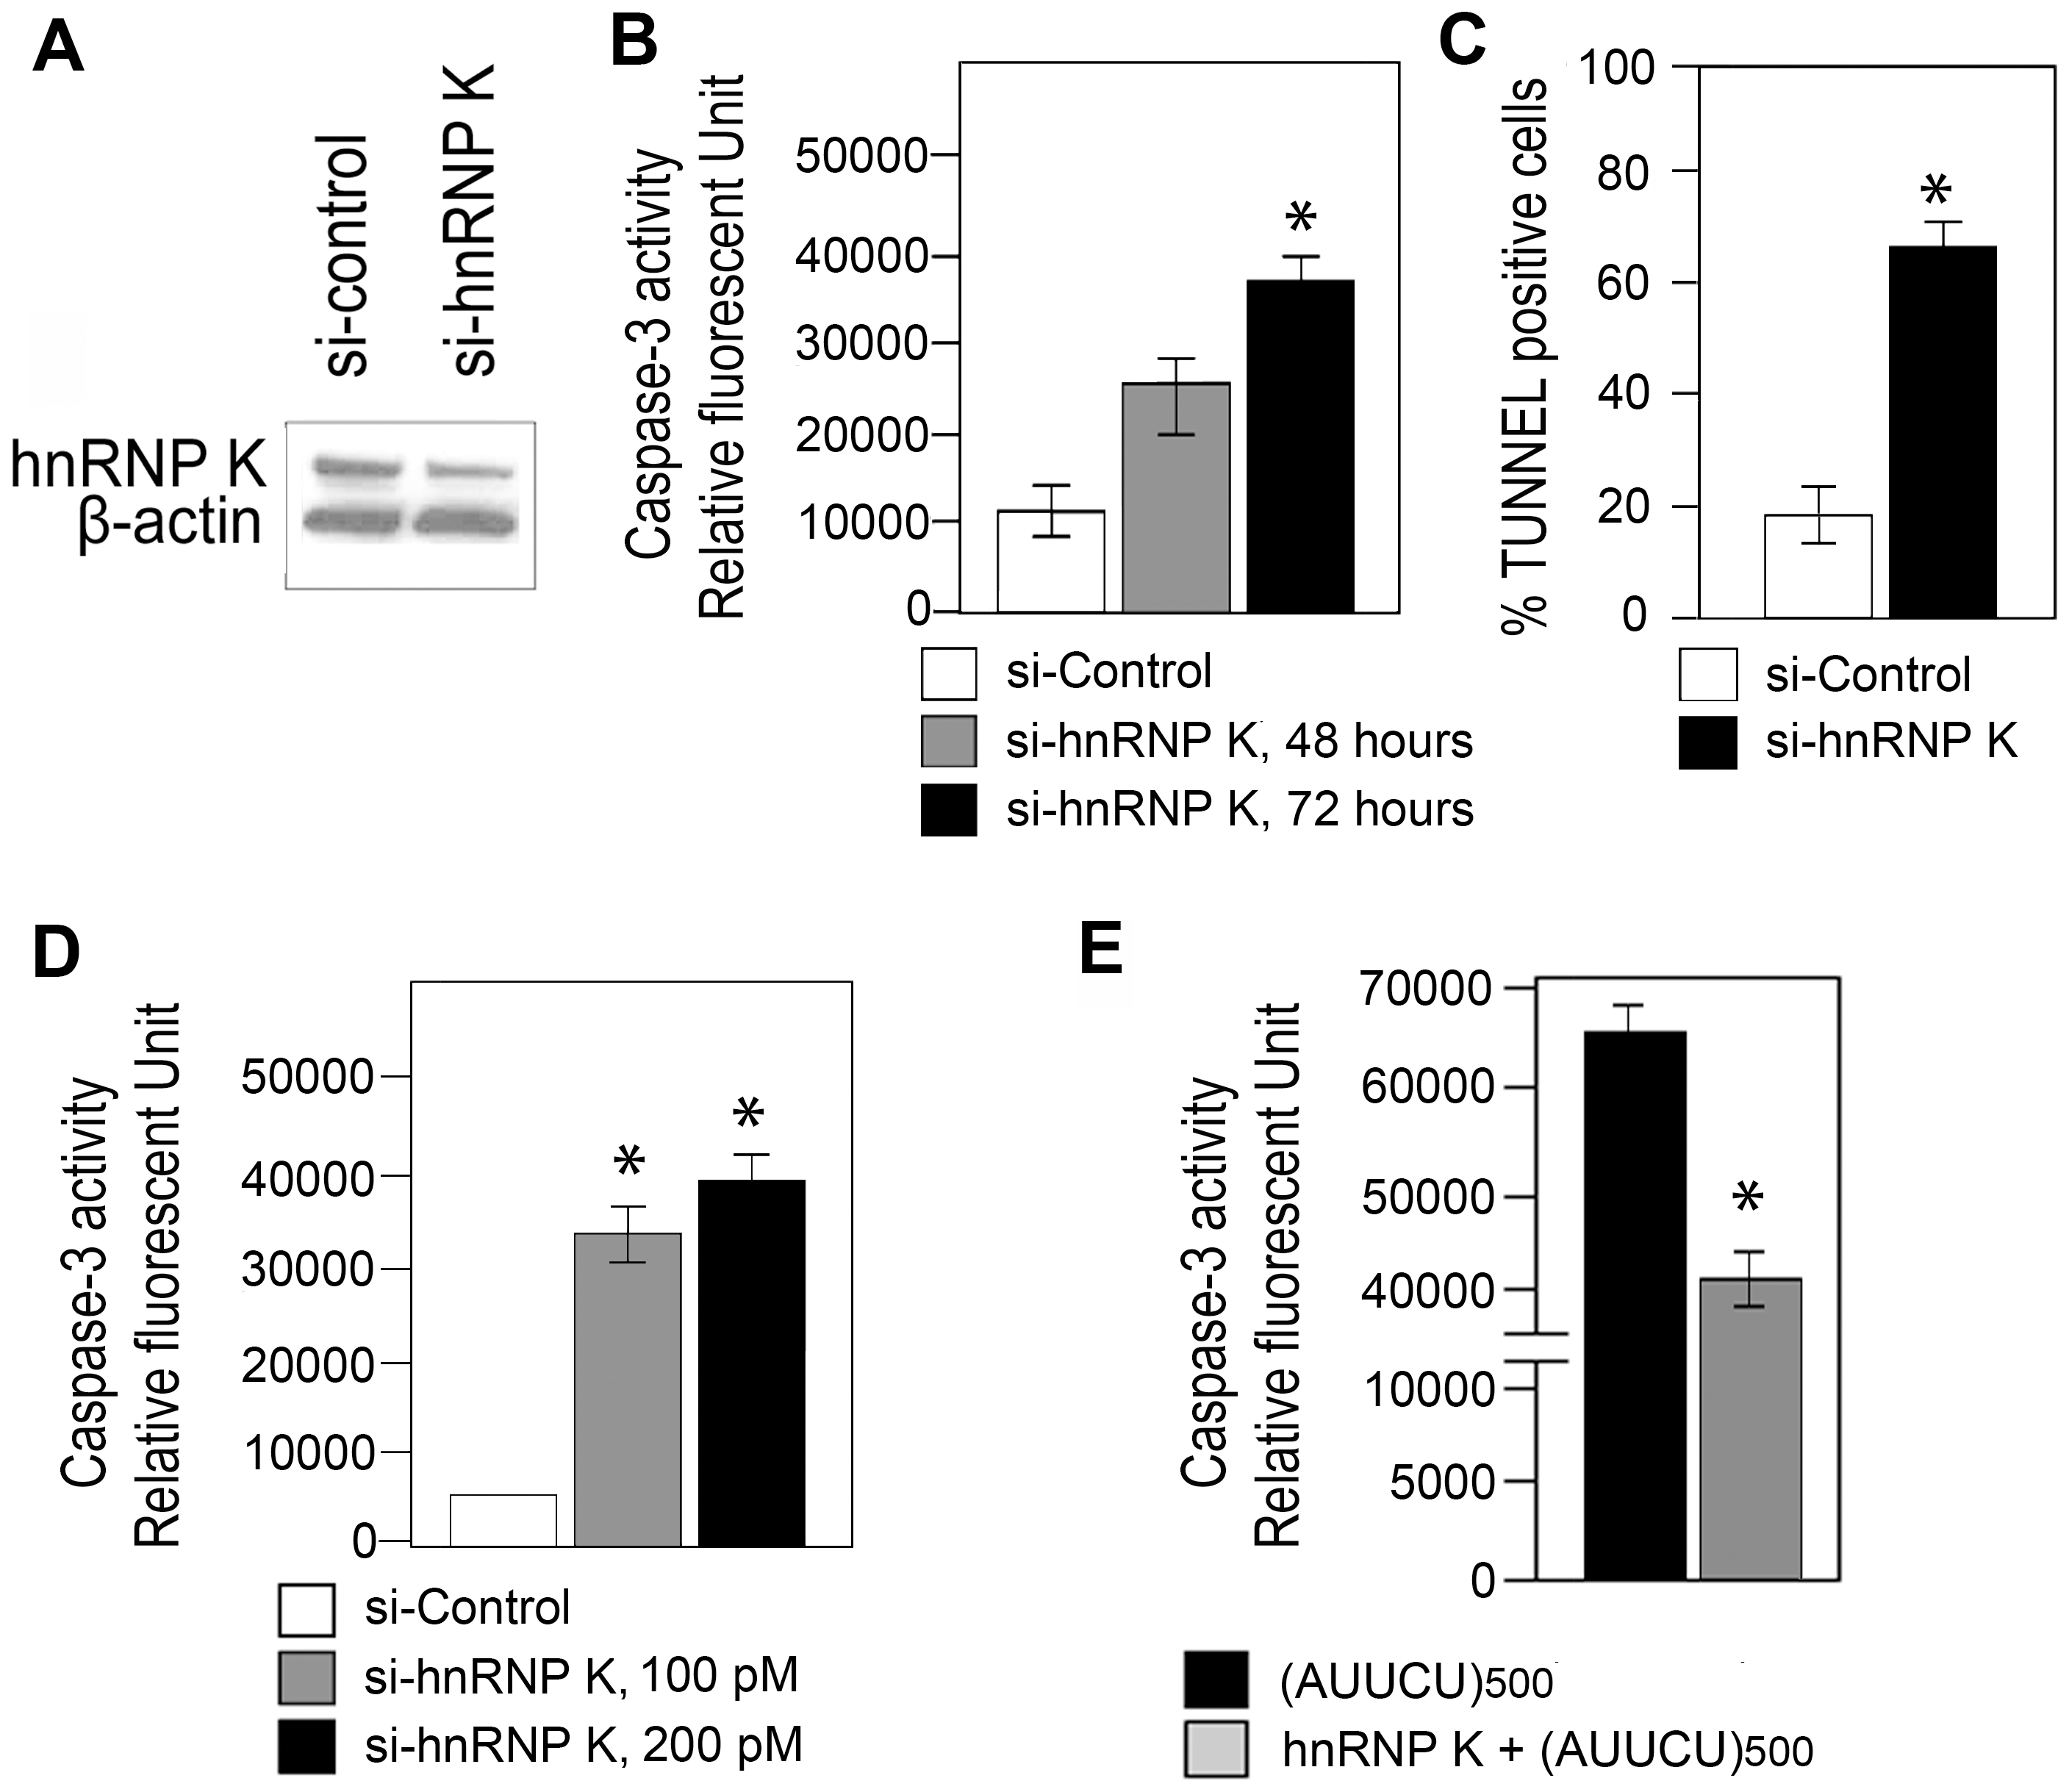 Targeted inactivation of <i>hnRNP K</i> triggers apoptosis whereas ectopic expression of hnRNP K rescues AUUCU–mediated apoptosis.